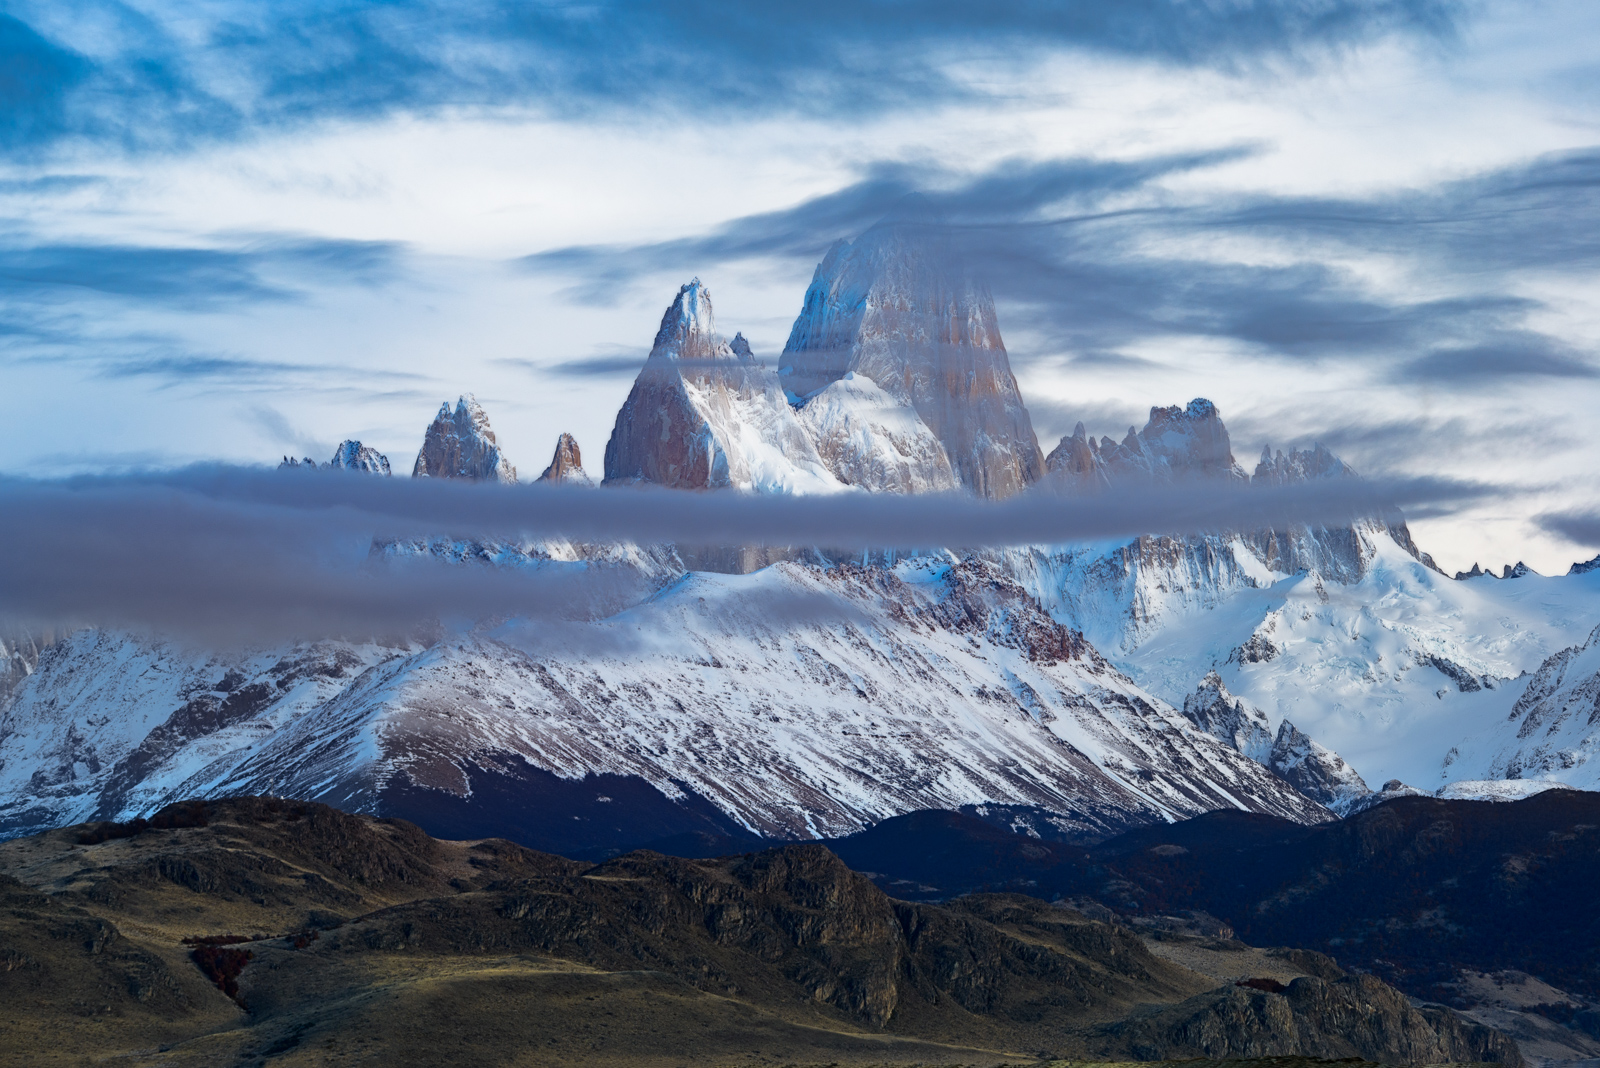 Mount Fitz Roy and clearing storm clouds, Patagonia, Argentina. Add beauty to your space with a Joseph Rossbach limited edition...